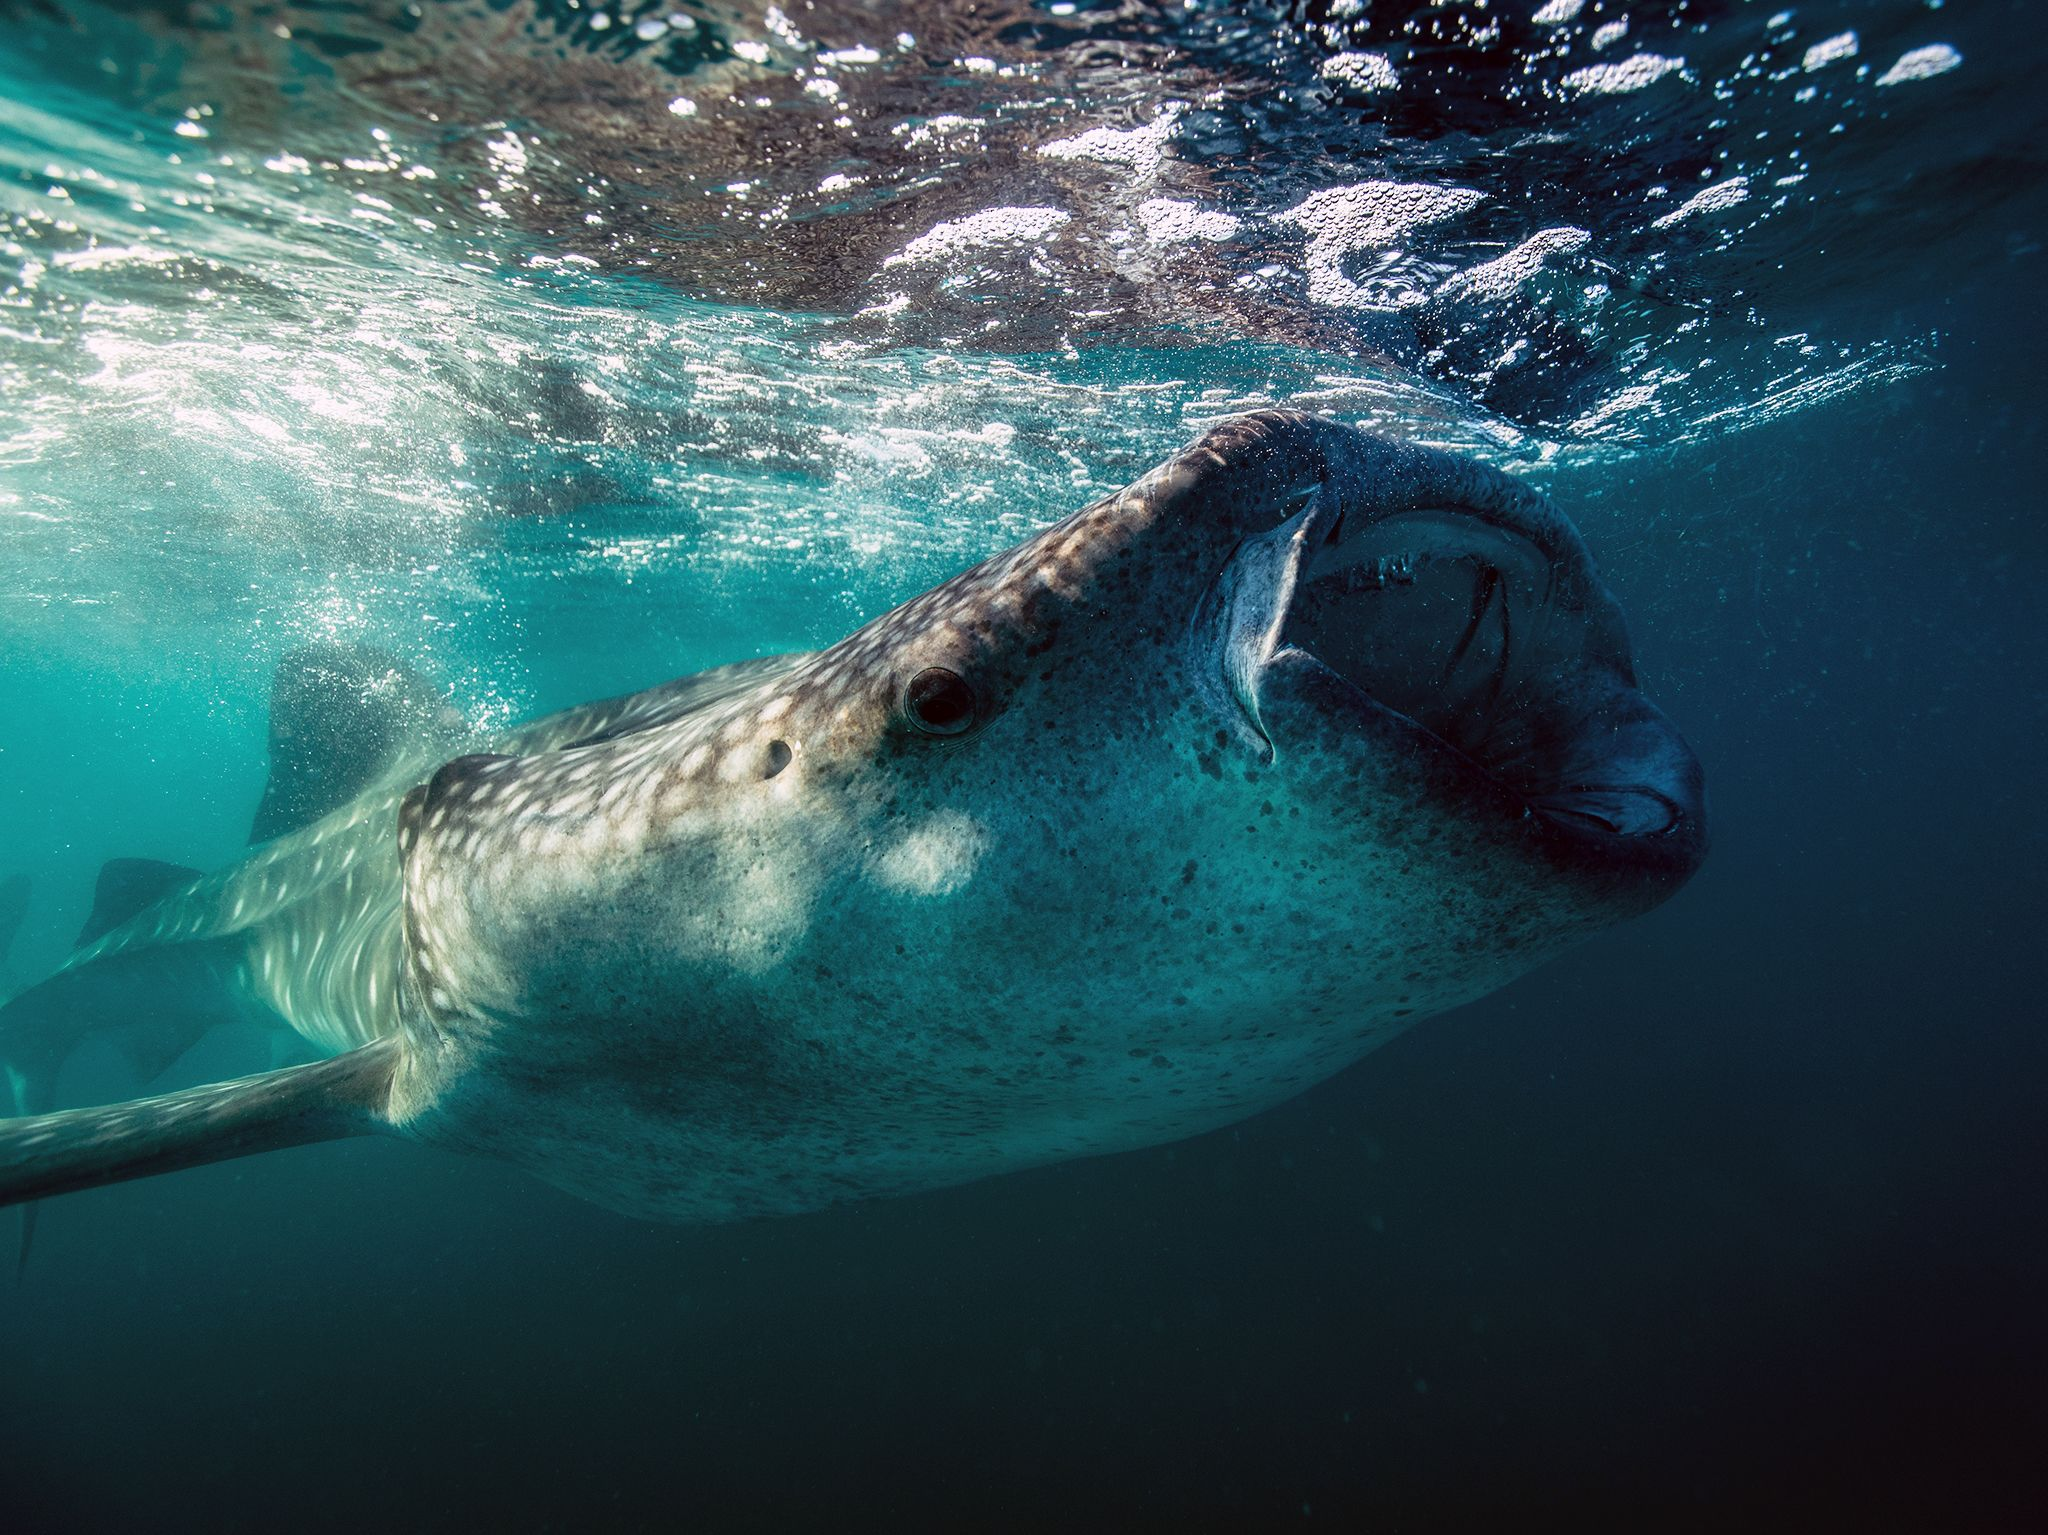 Sea Of Cortez, Mexico:  A juvenile Whale shark gorges on plankton at the surface during a... [Foto del giorno - novembre 2018]